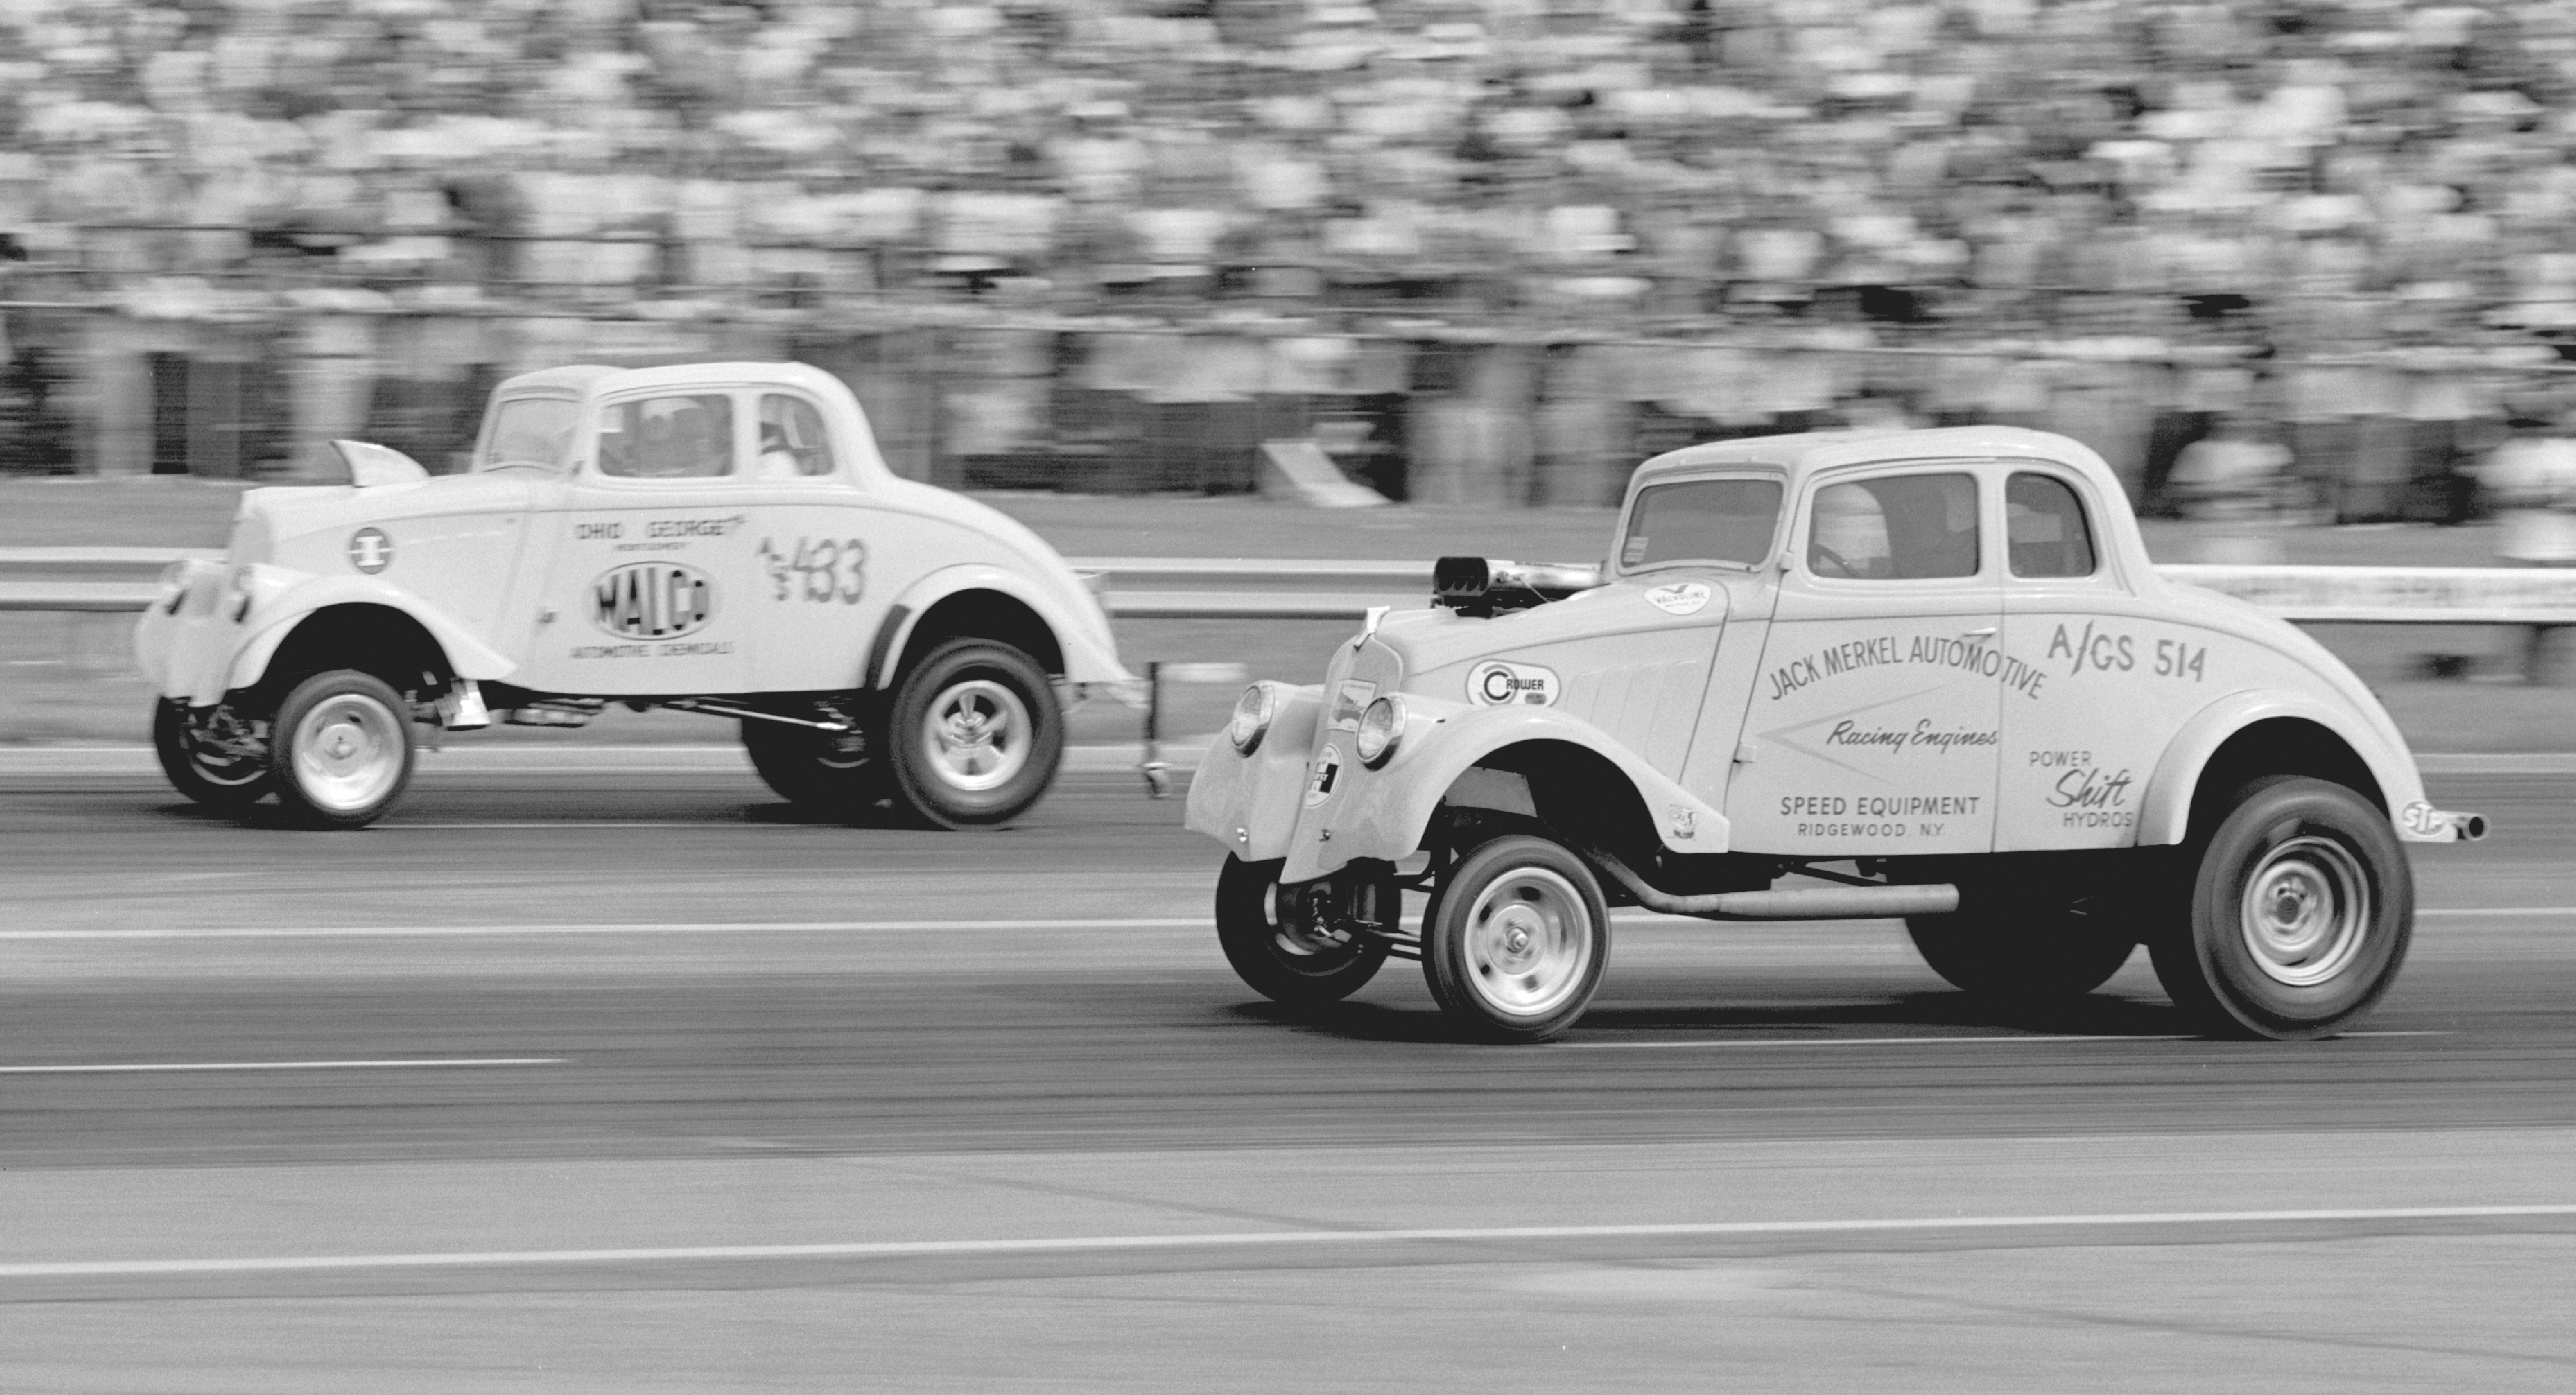 The biggest upset of NHRA's biggest show saw Jack Merkel's month-old Willys hand George Montgomery his first-ever Nationals A/GS defeat, snapping a streak started in 1959. Jack's 9.98/142.18 topped Ohio George's 10.07/134.73, after which Merkel fell to eventual class winner Doug Cook.